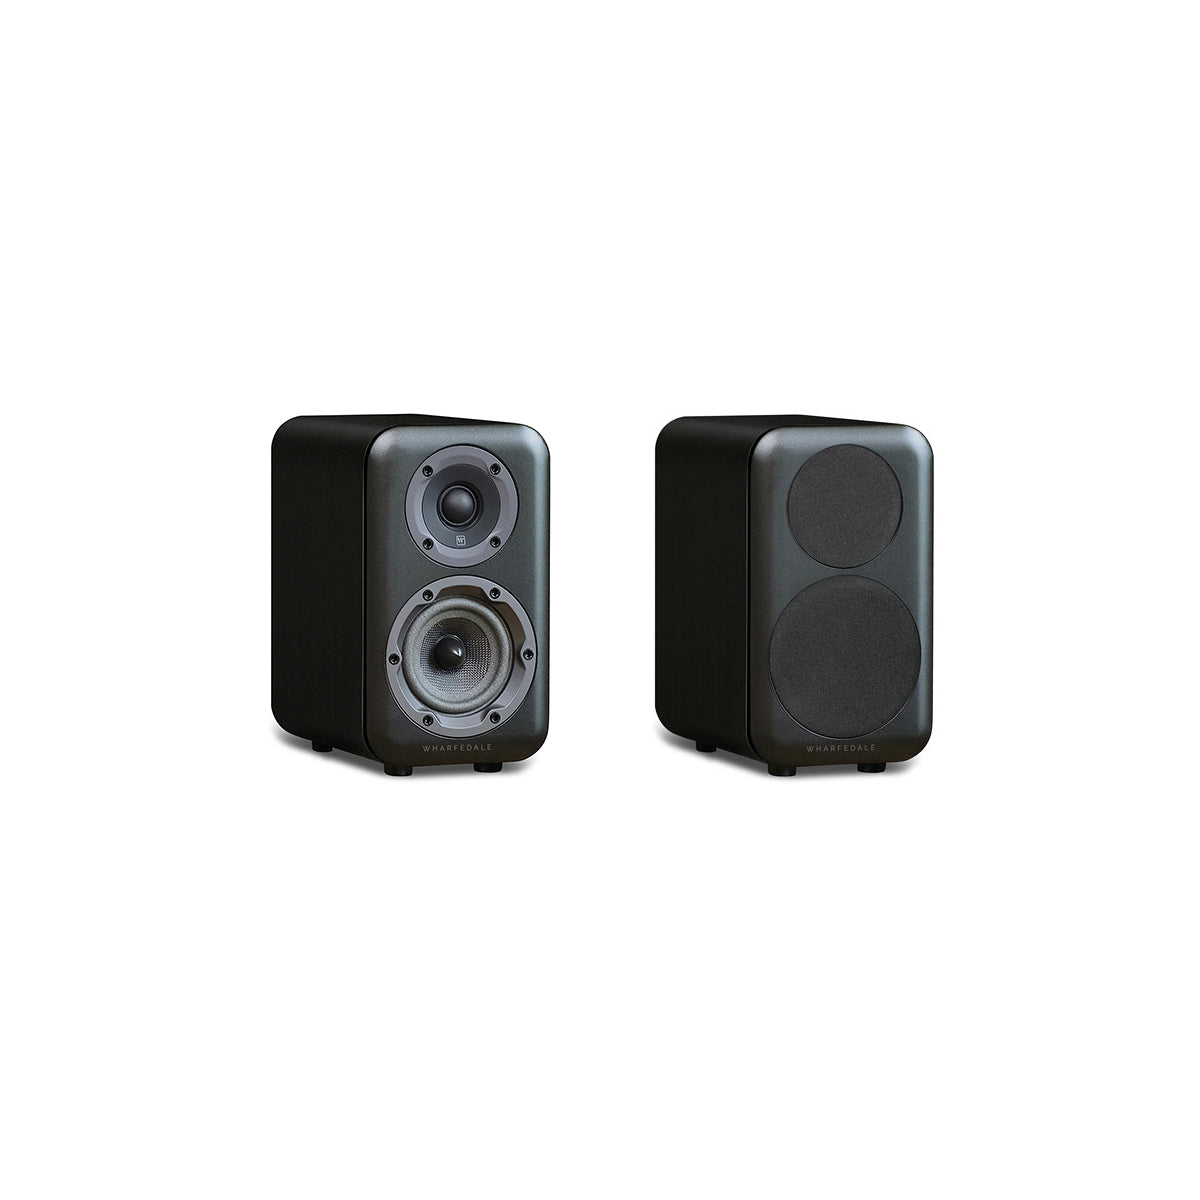 Wharfedale D310 Compact Bookshelf Speakers